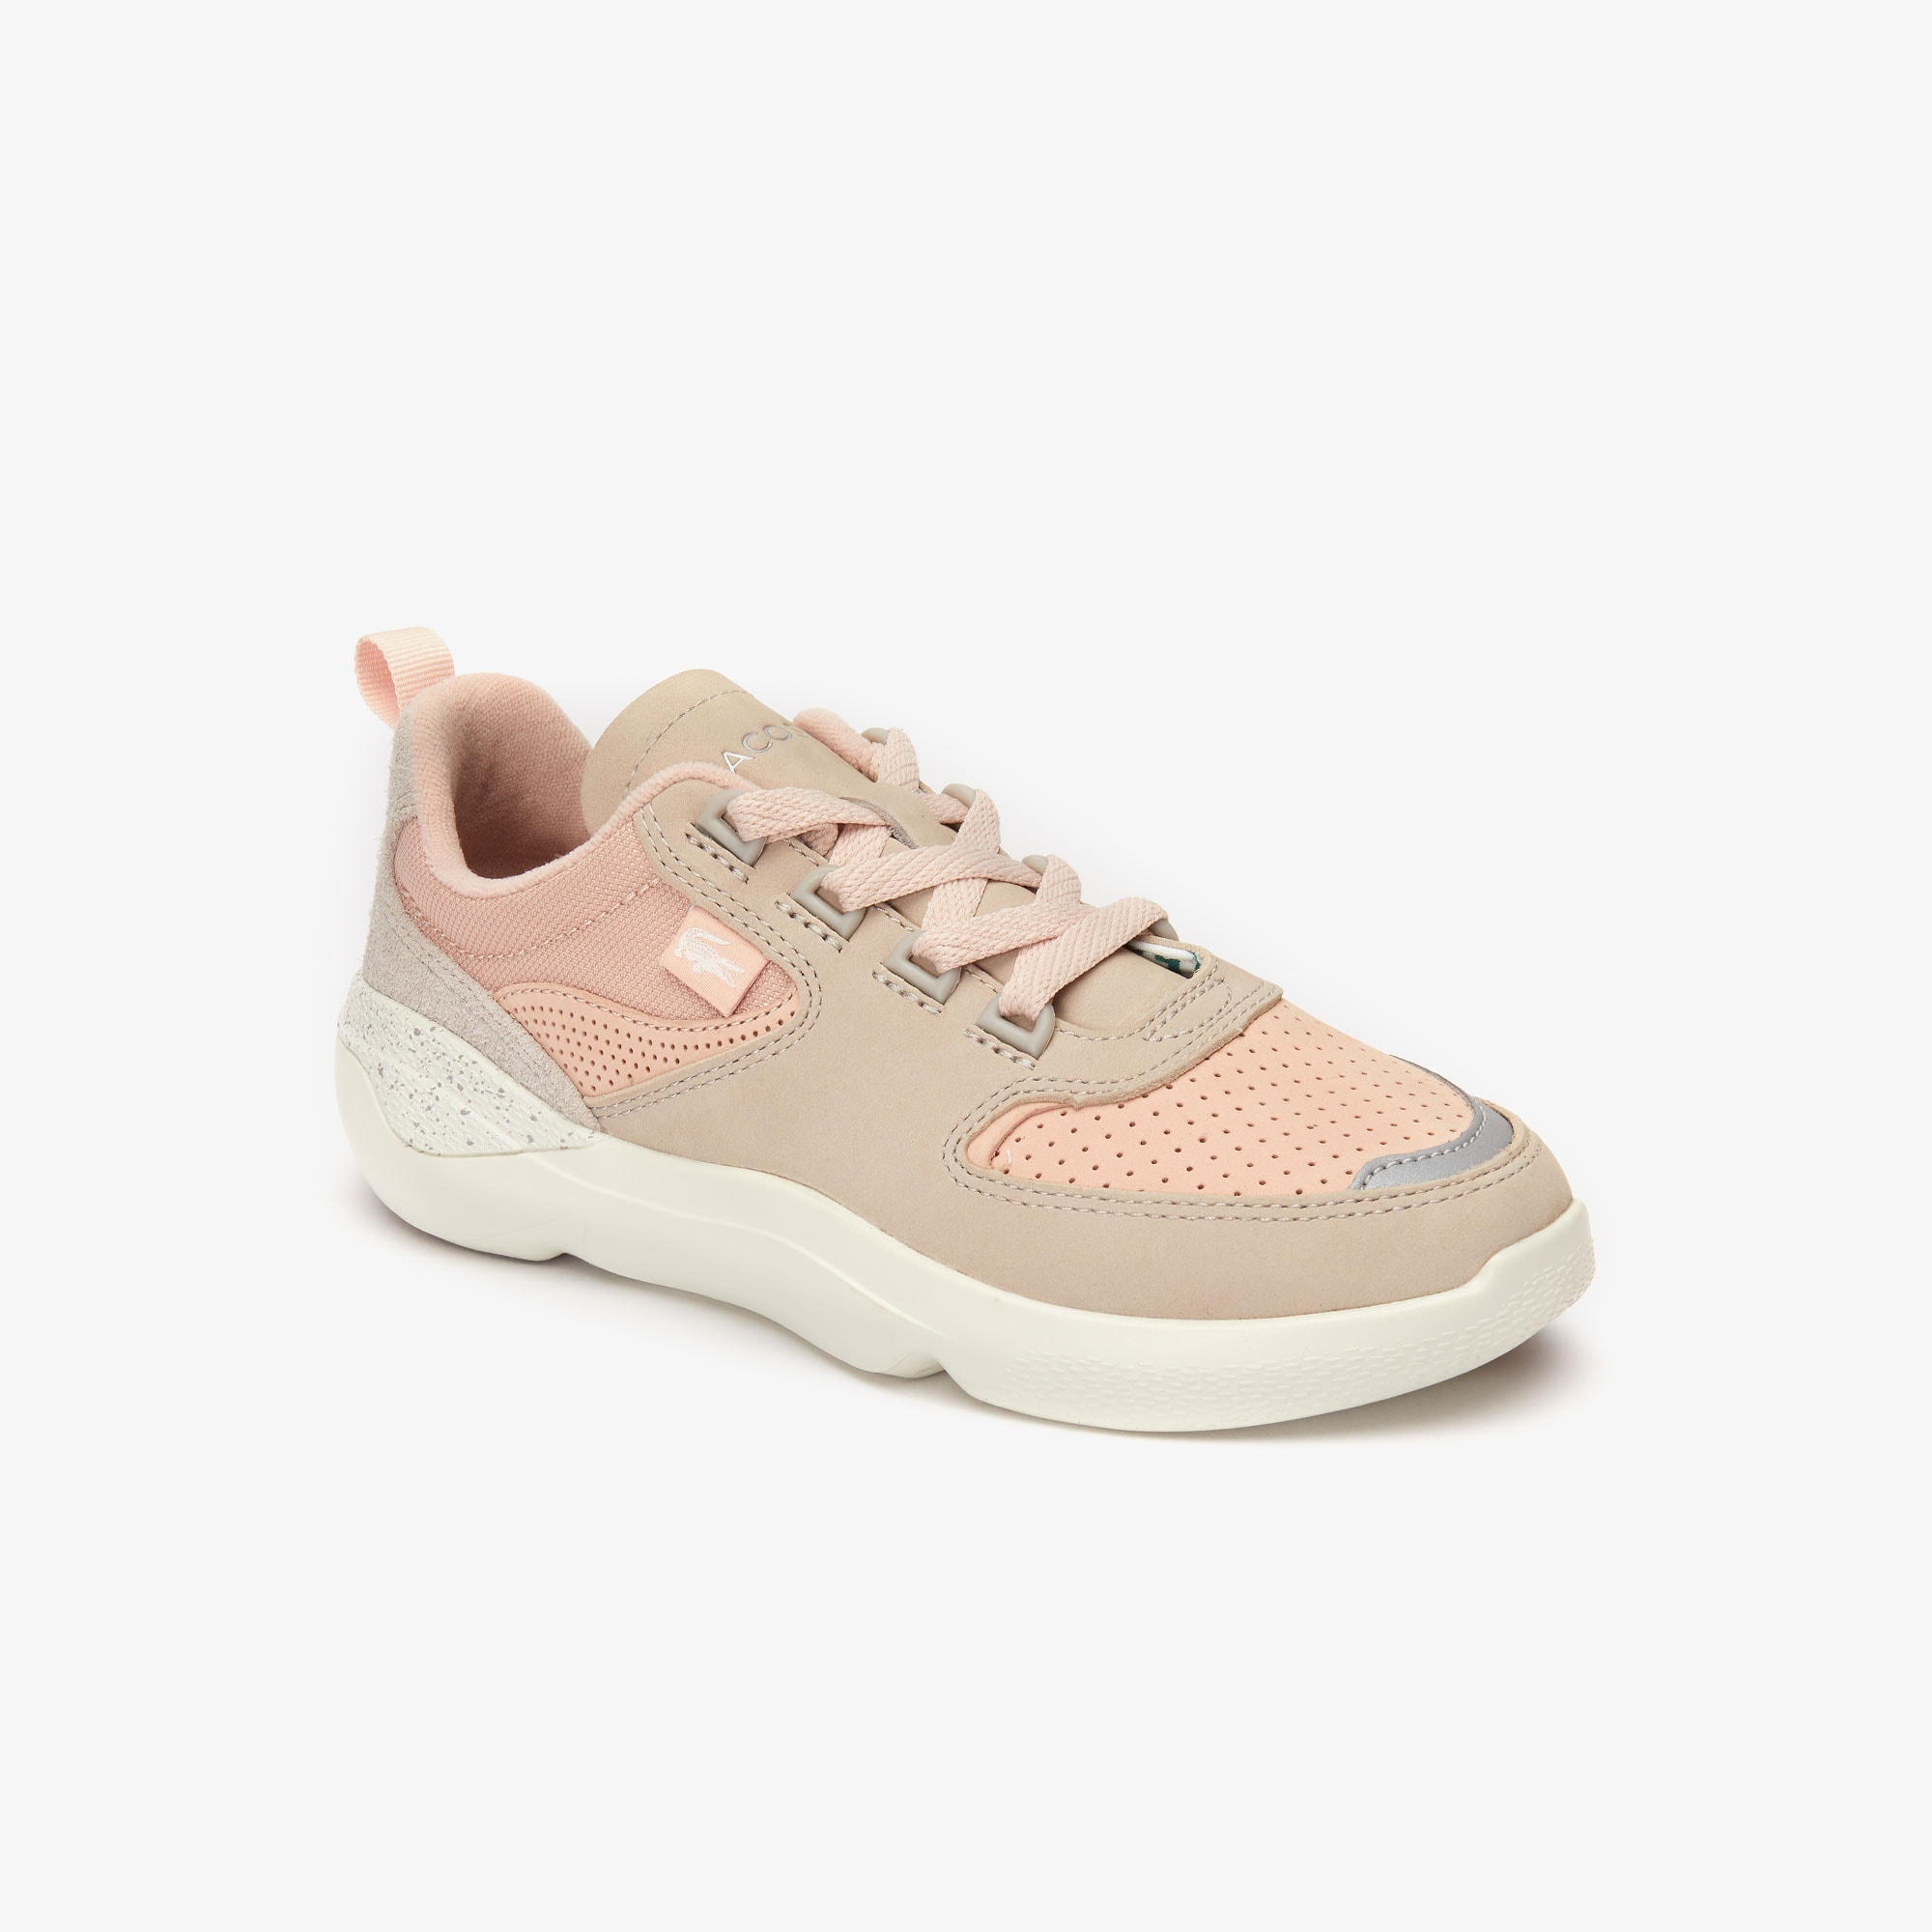 Lacoste Sneakers Women's Wildcard Paneled Leather Sneakers